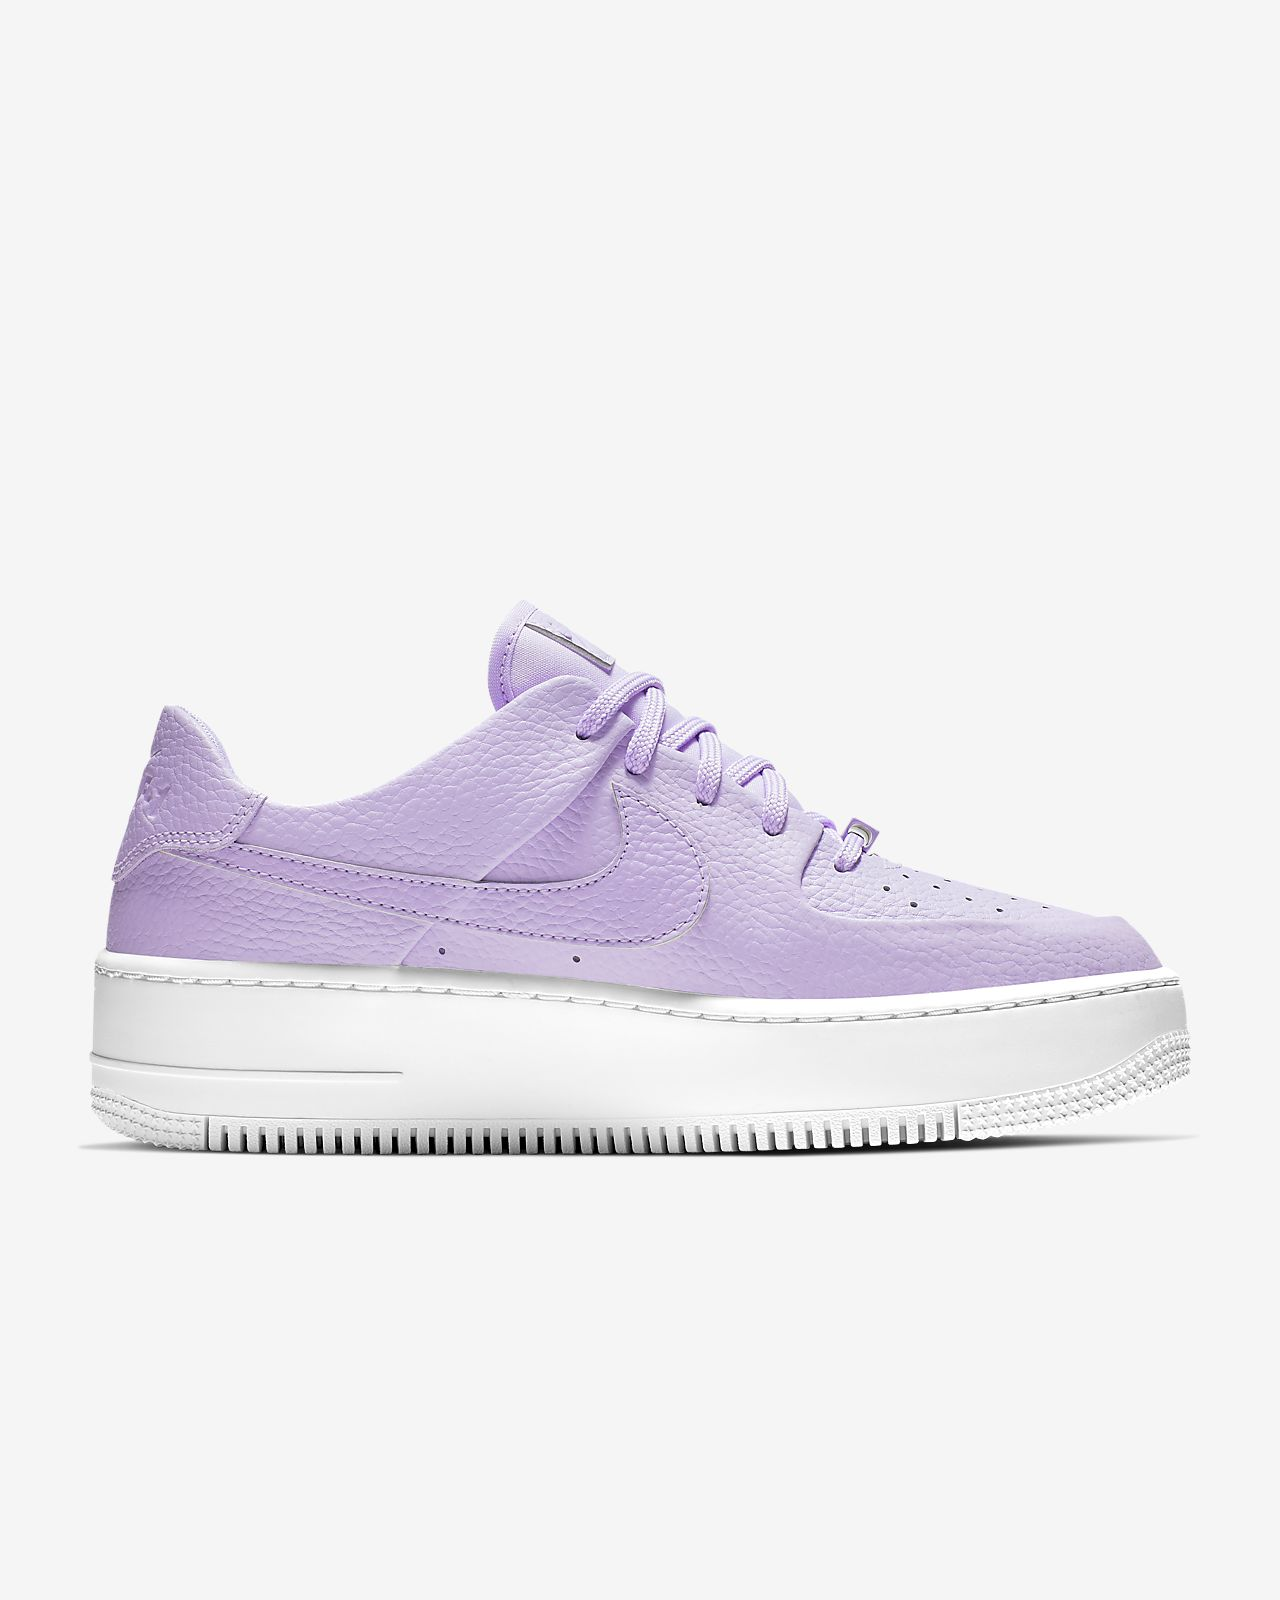 official photos 70356 d369e ... Chaussure Nike Air Force 1 Sage Low pour Femme